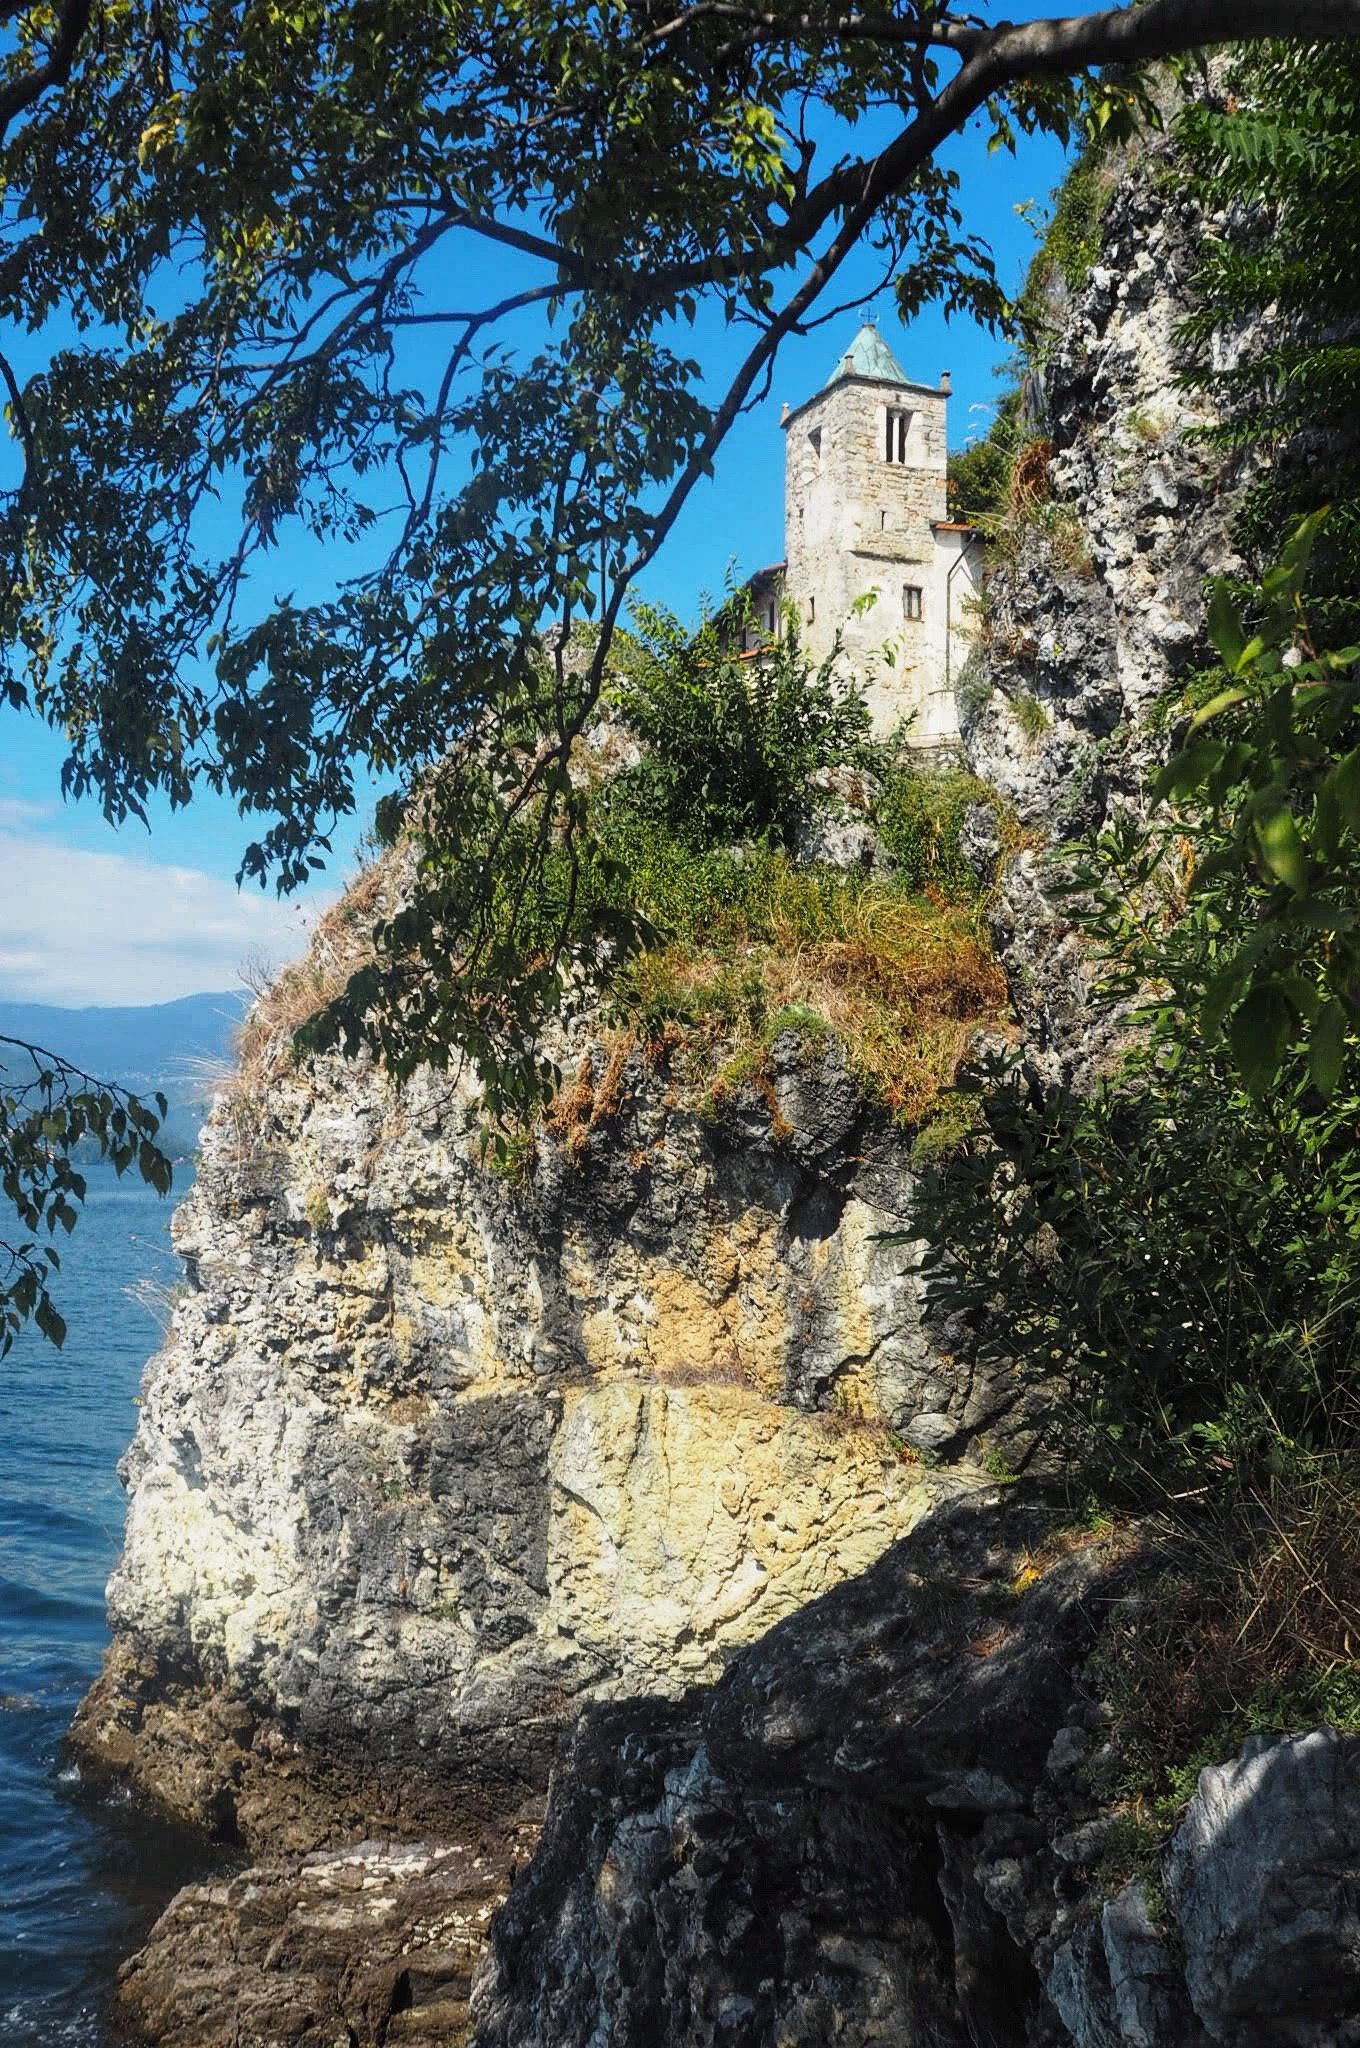 Santa-Caterina-del-Sasso-St-Catherine-of-the-Stone-Monastery-Lake-Maggiore